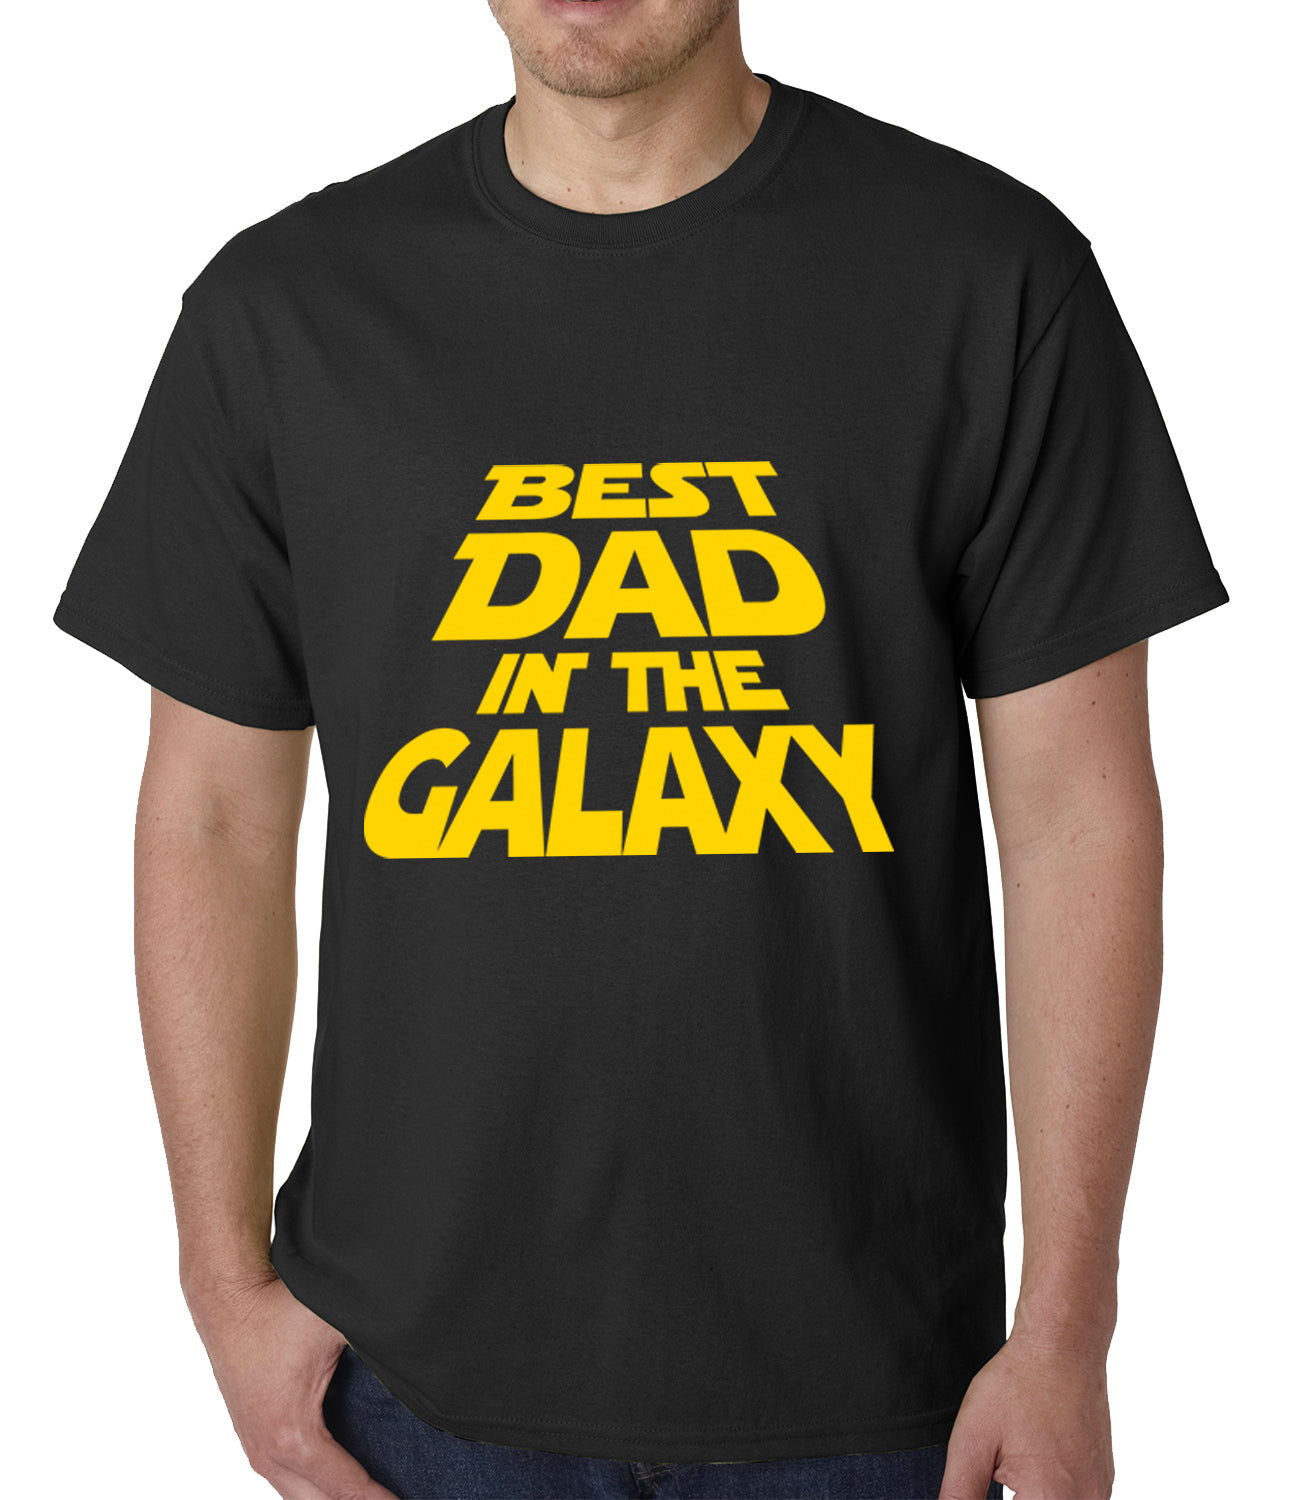 ed2c6f69 Best Dad in The Galaxy Mens T-shirt – Bewild